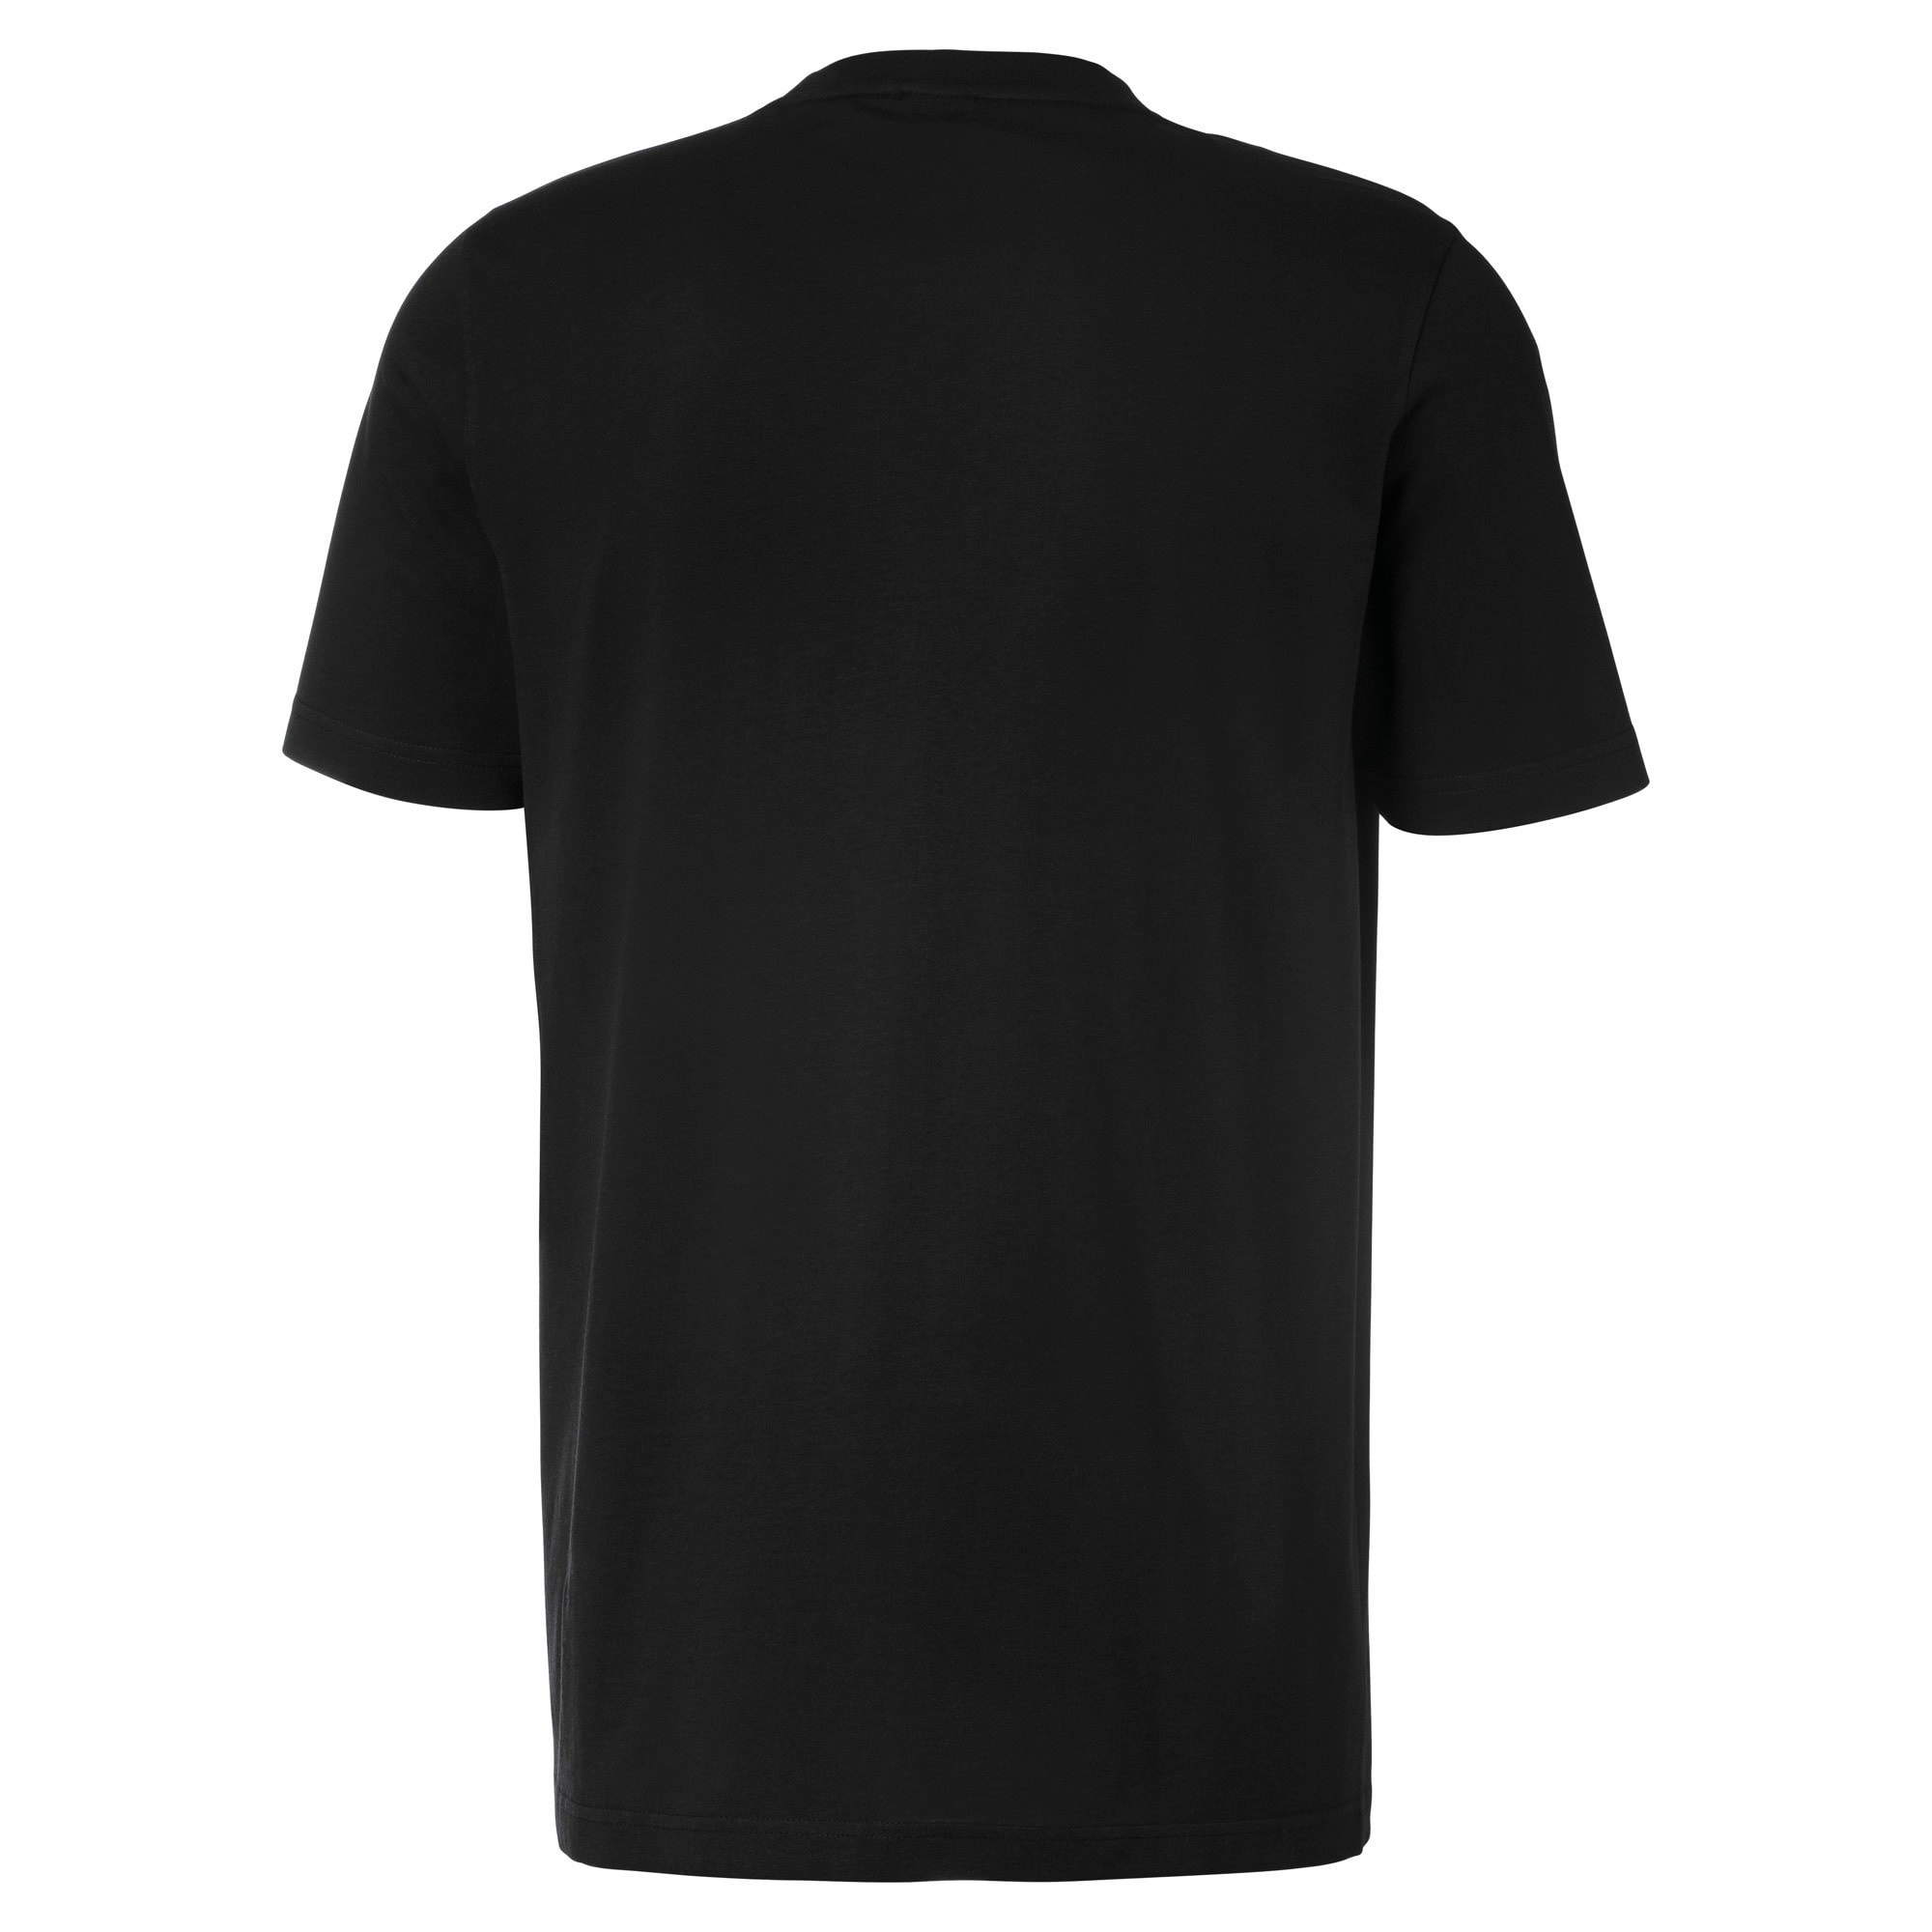 Thumbnail 2 of PUMA x HELLY HANSEN Crew Neck Cotton Tee, Puma Black, medium